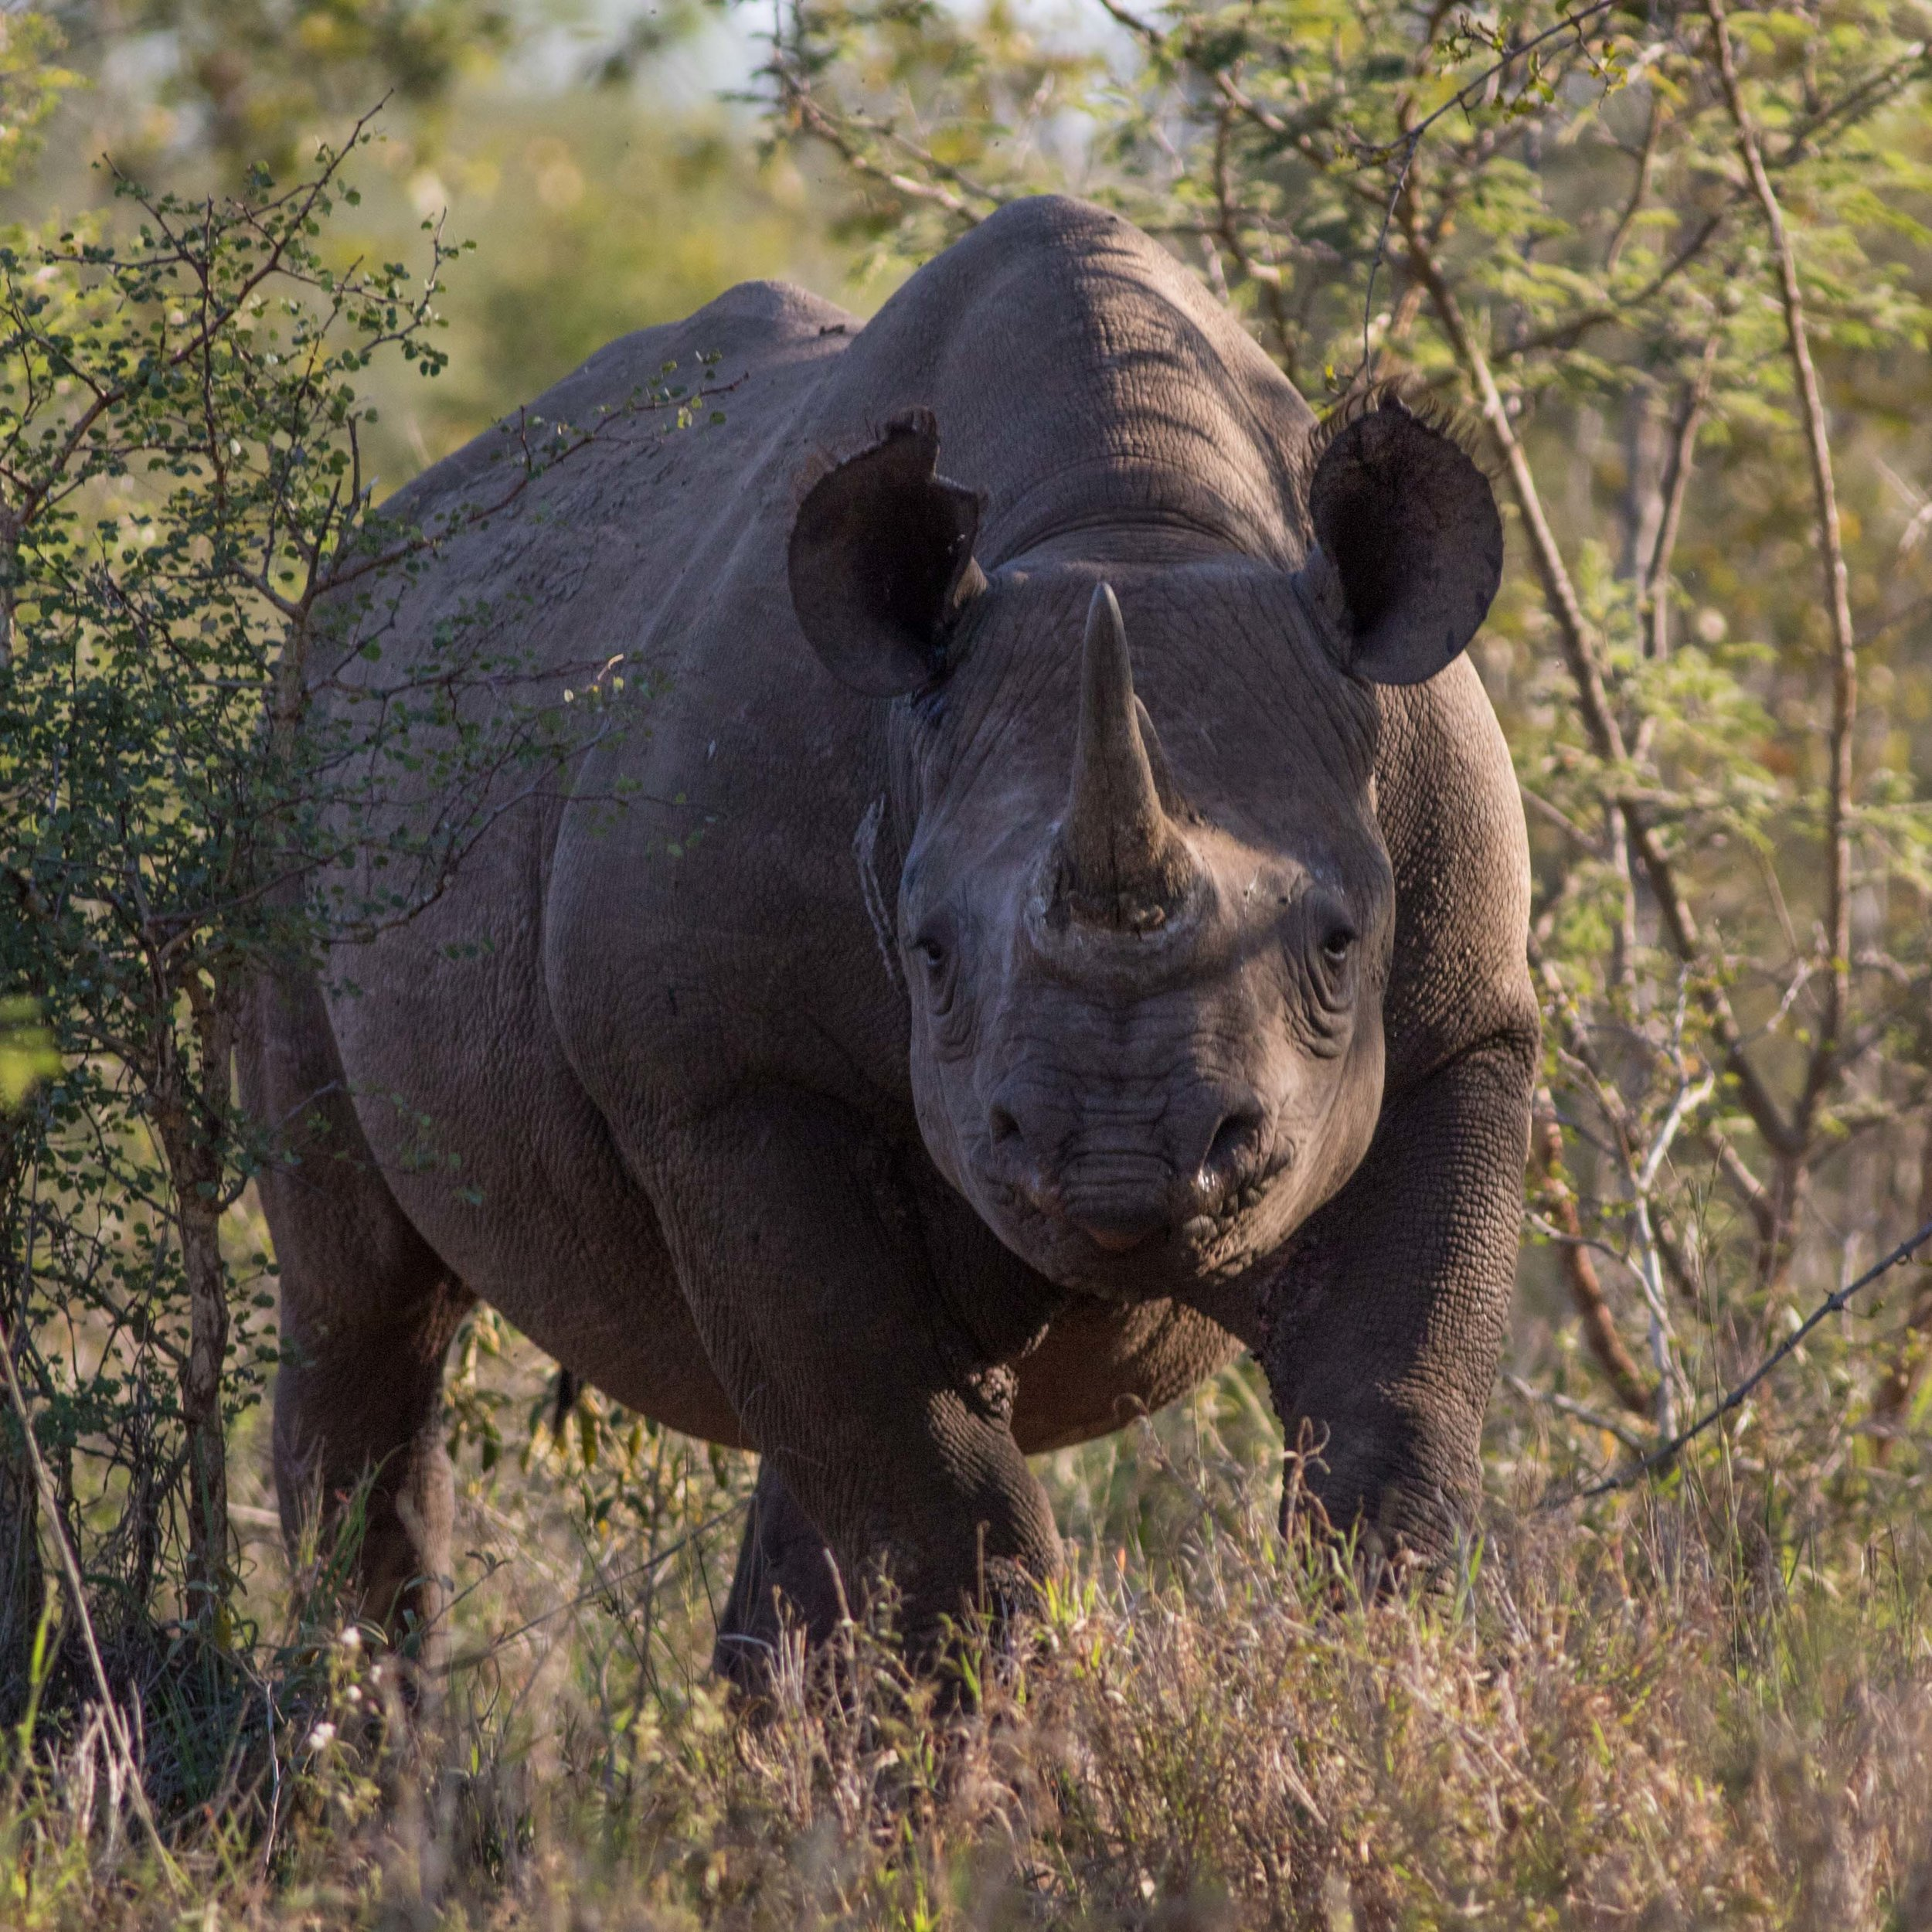 An adult black rhinoceros pauses to investigate its surroundings.